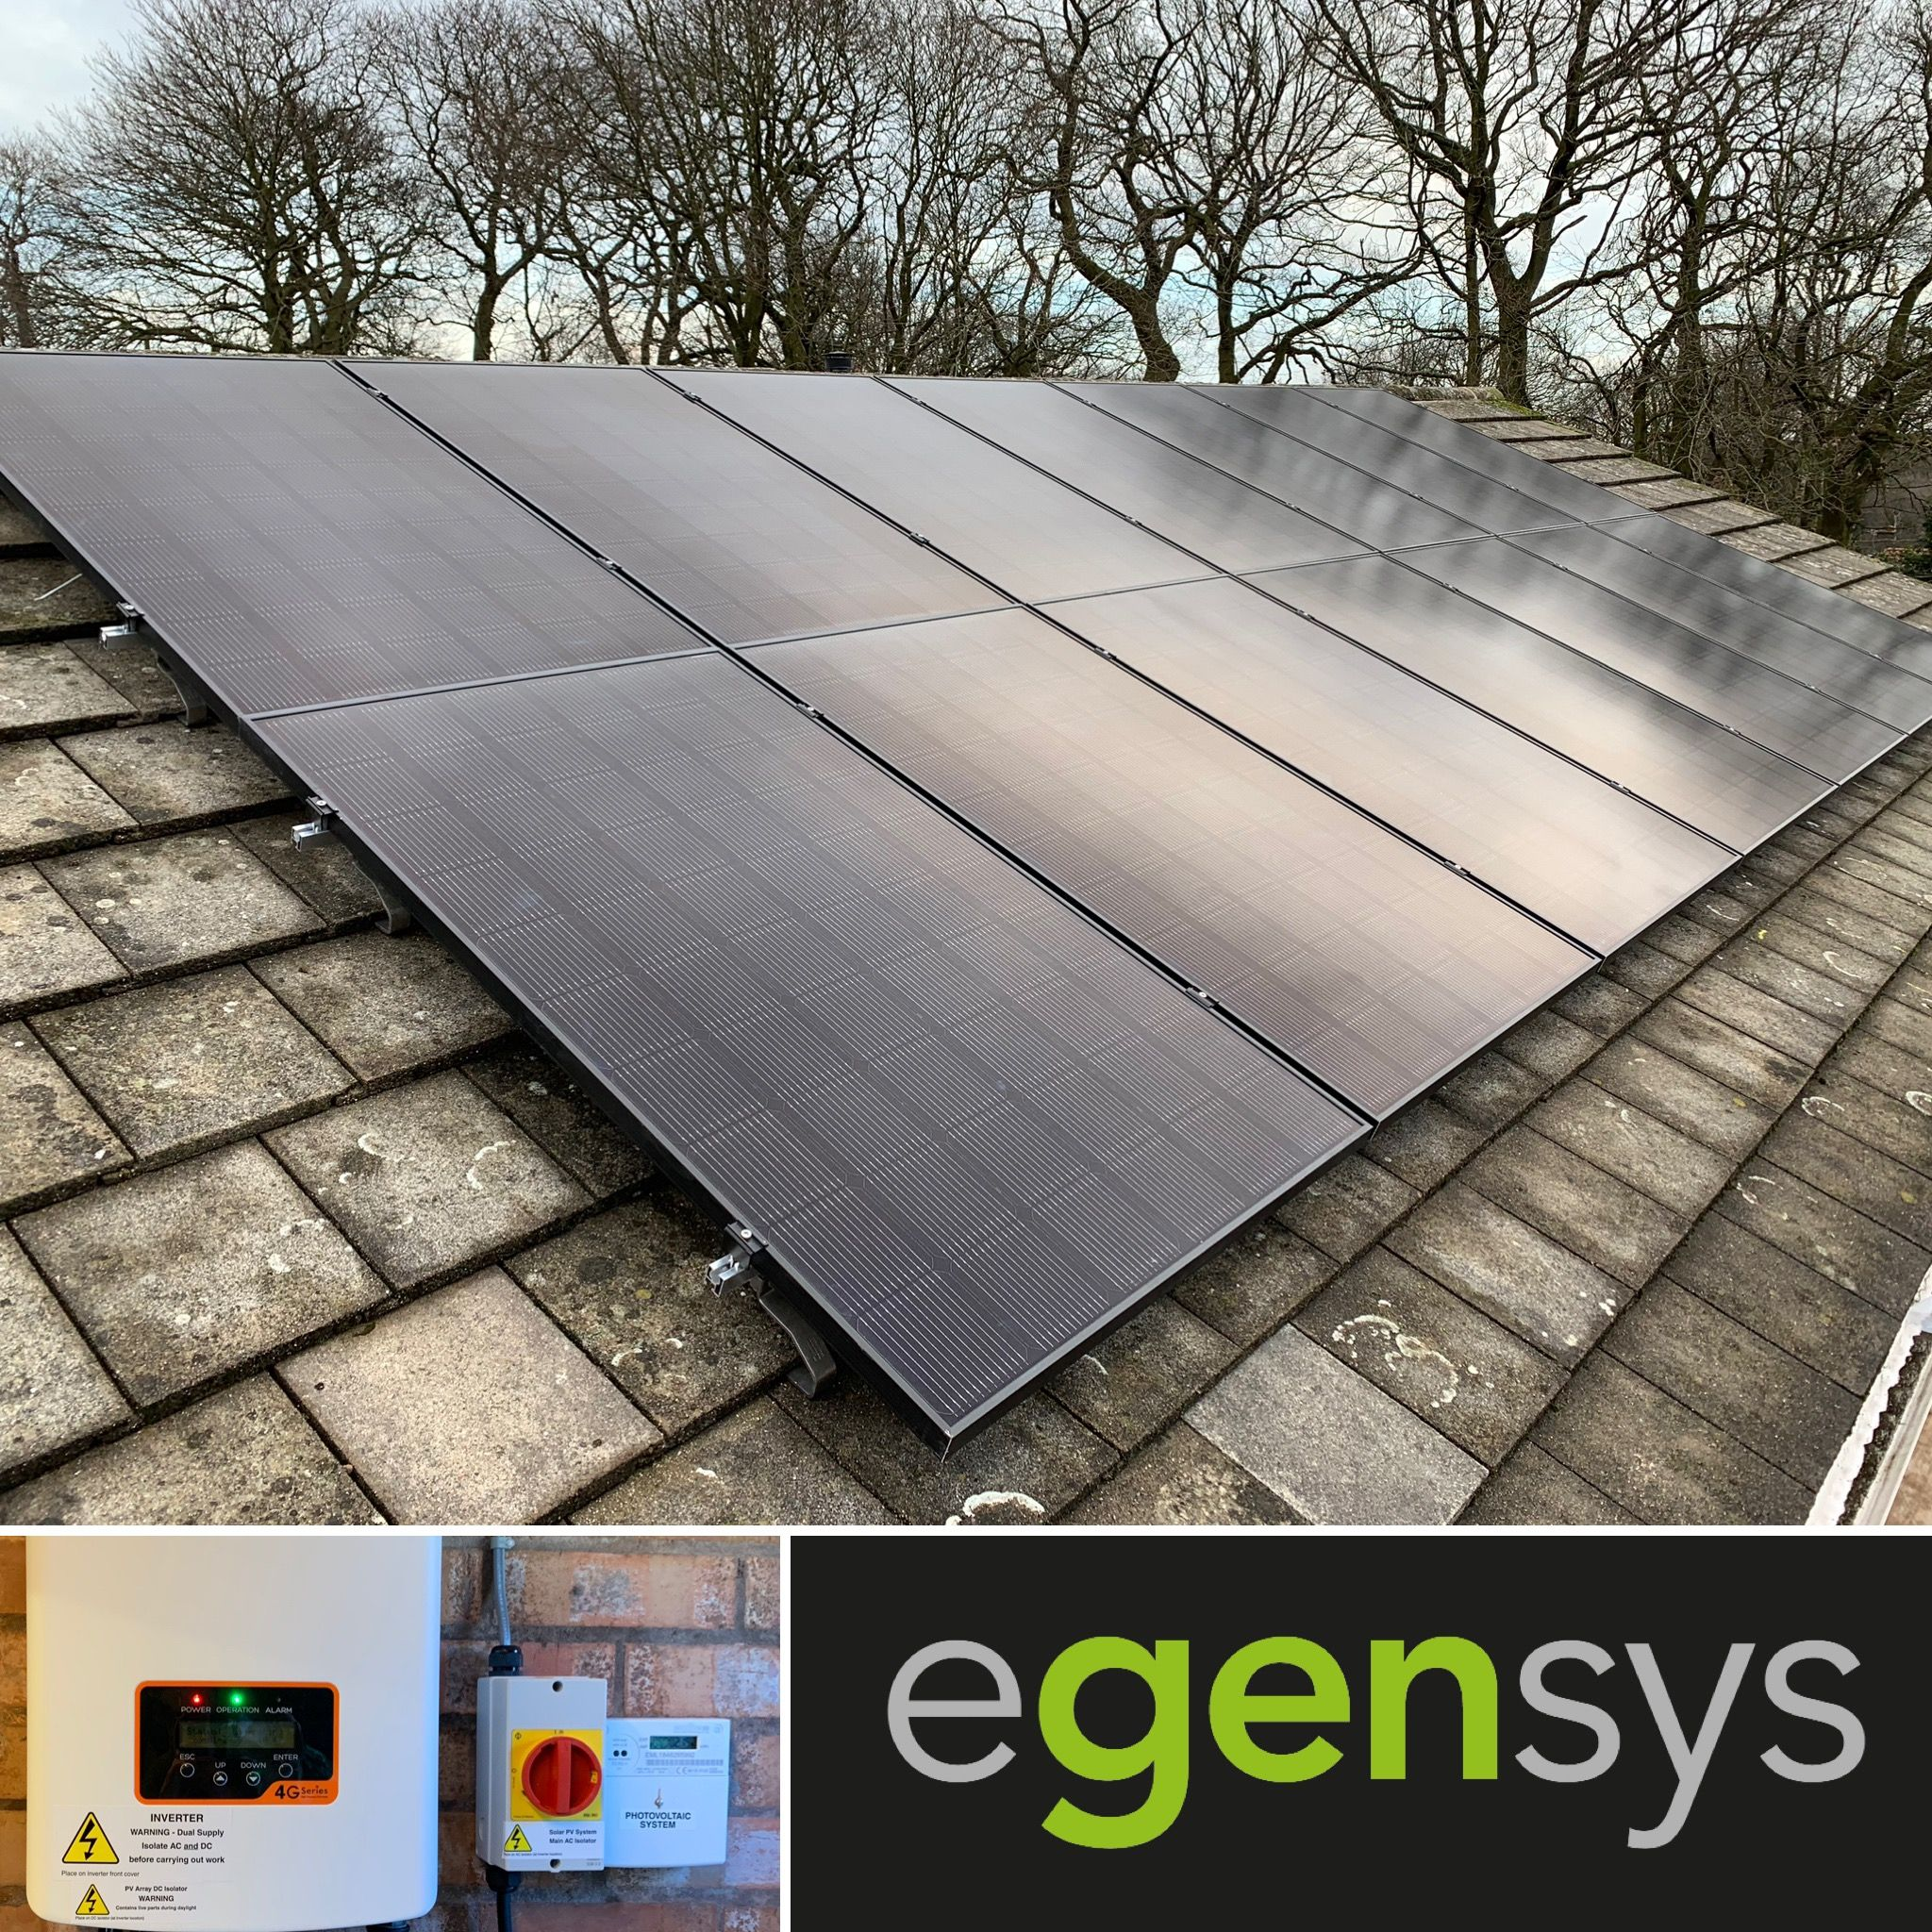 4 48kw Solar Panel System Using 14 Lg 320w Lg320n1k V5 All Black Pv Modules With A Solis 3 6 Inverter Installed In Ravenshe Solar Solar Panel System Solar Pv